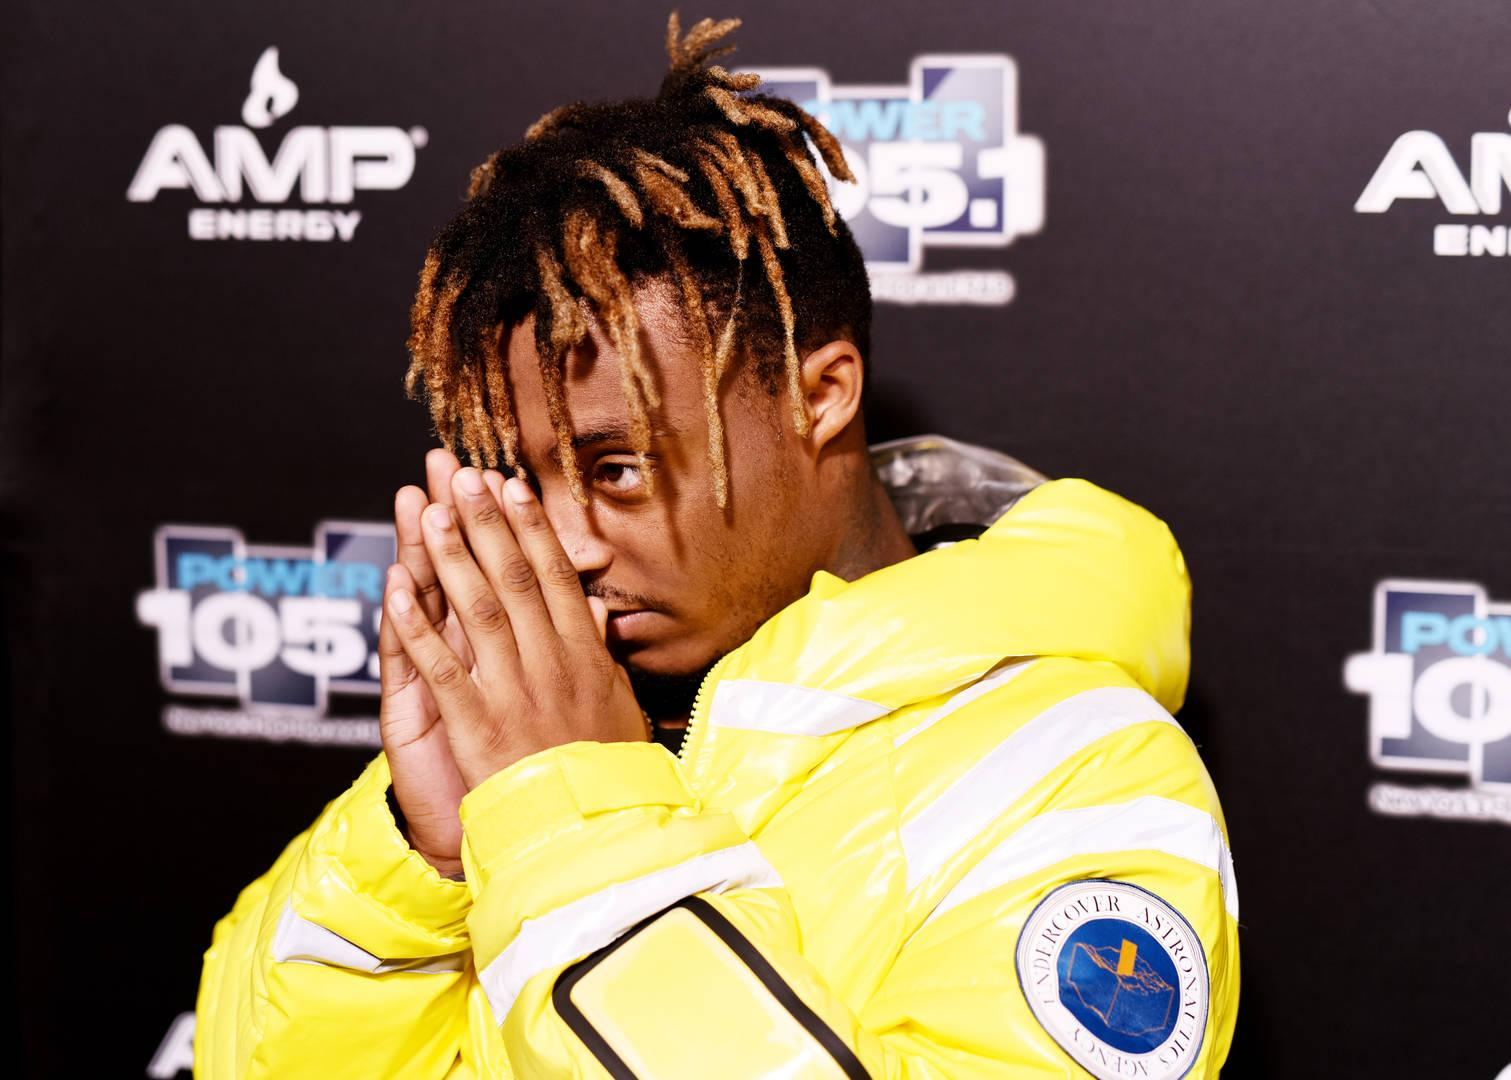 Juice WRLD Unleashes His Sophomore Album Death Race For Love